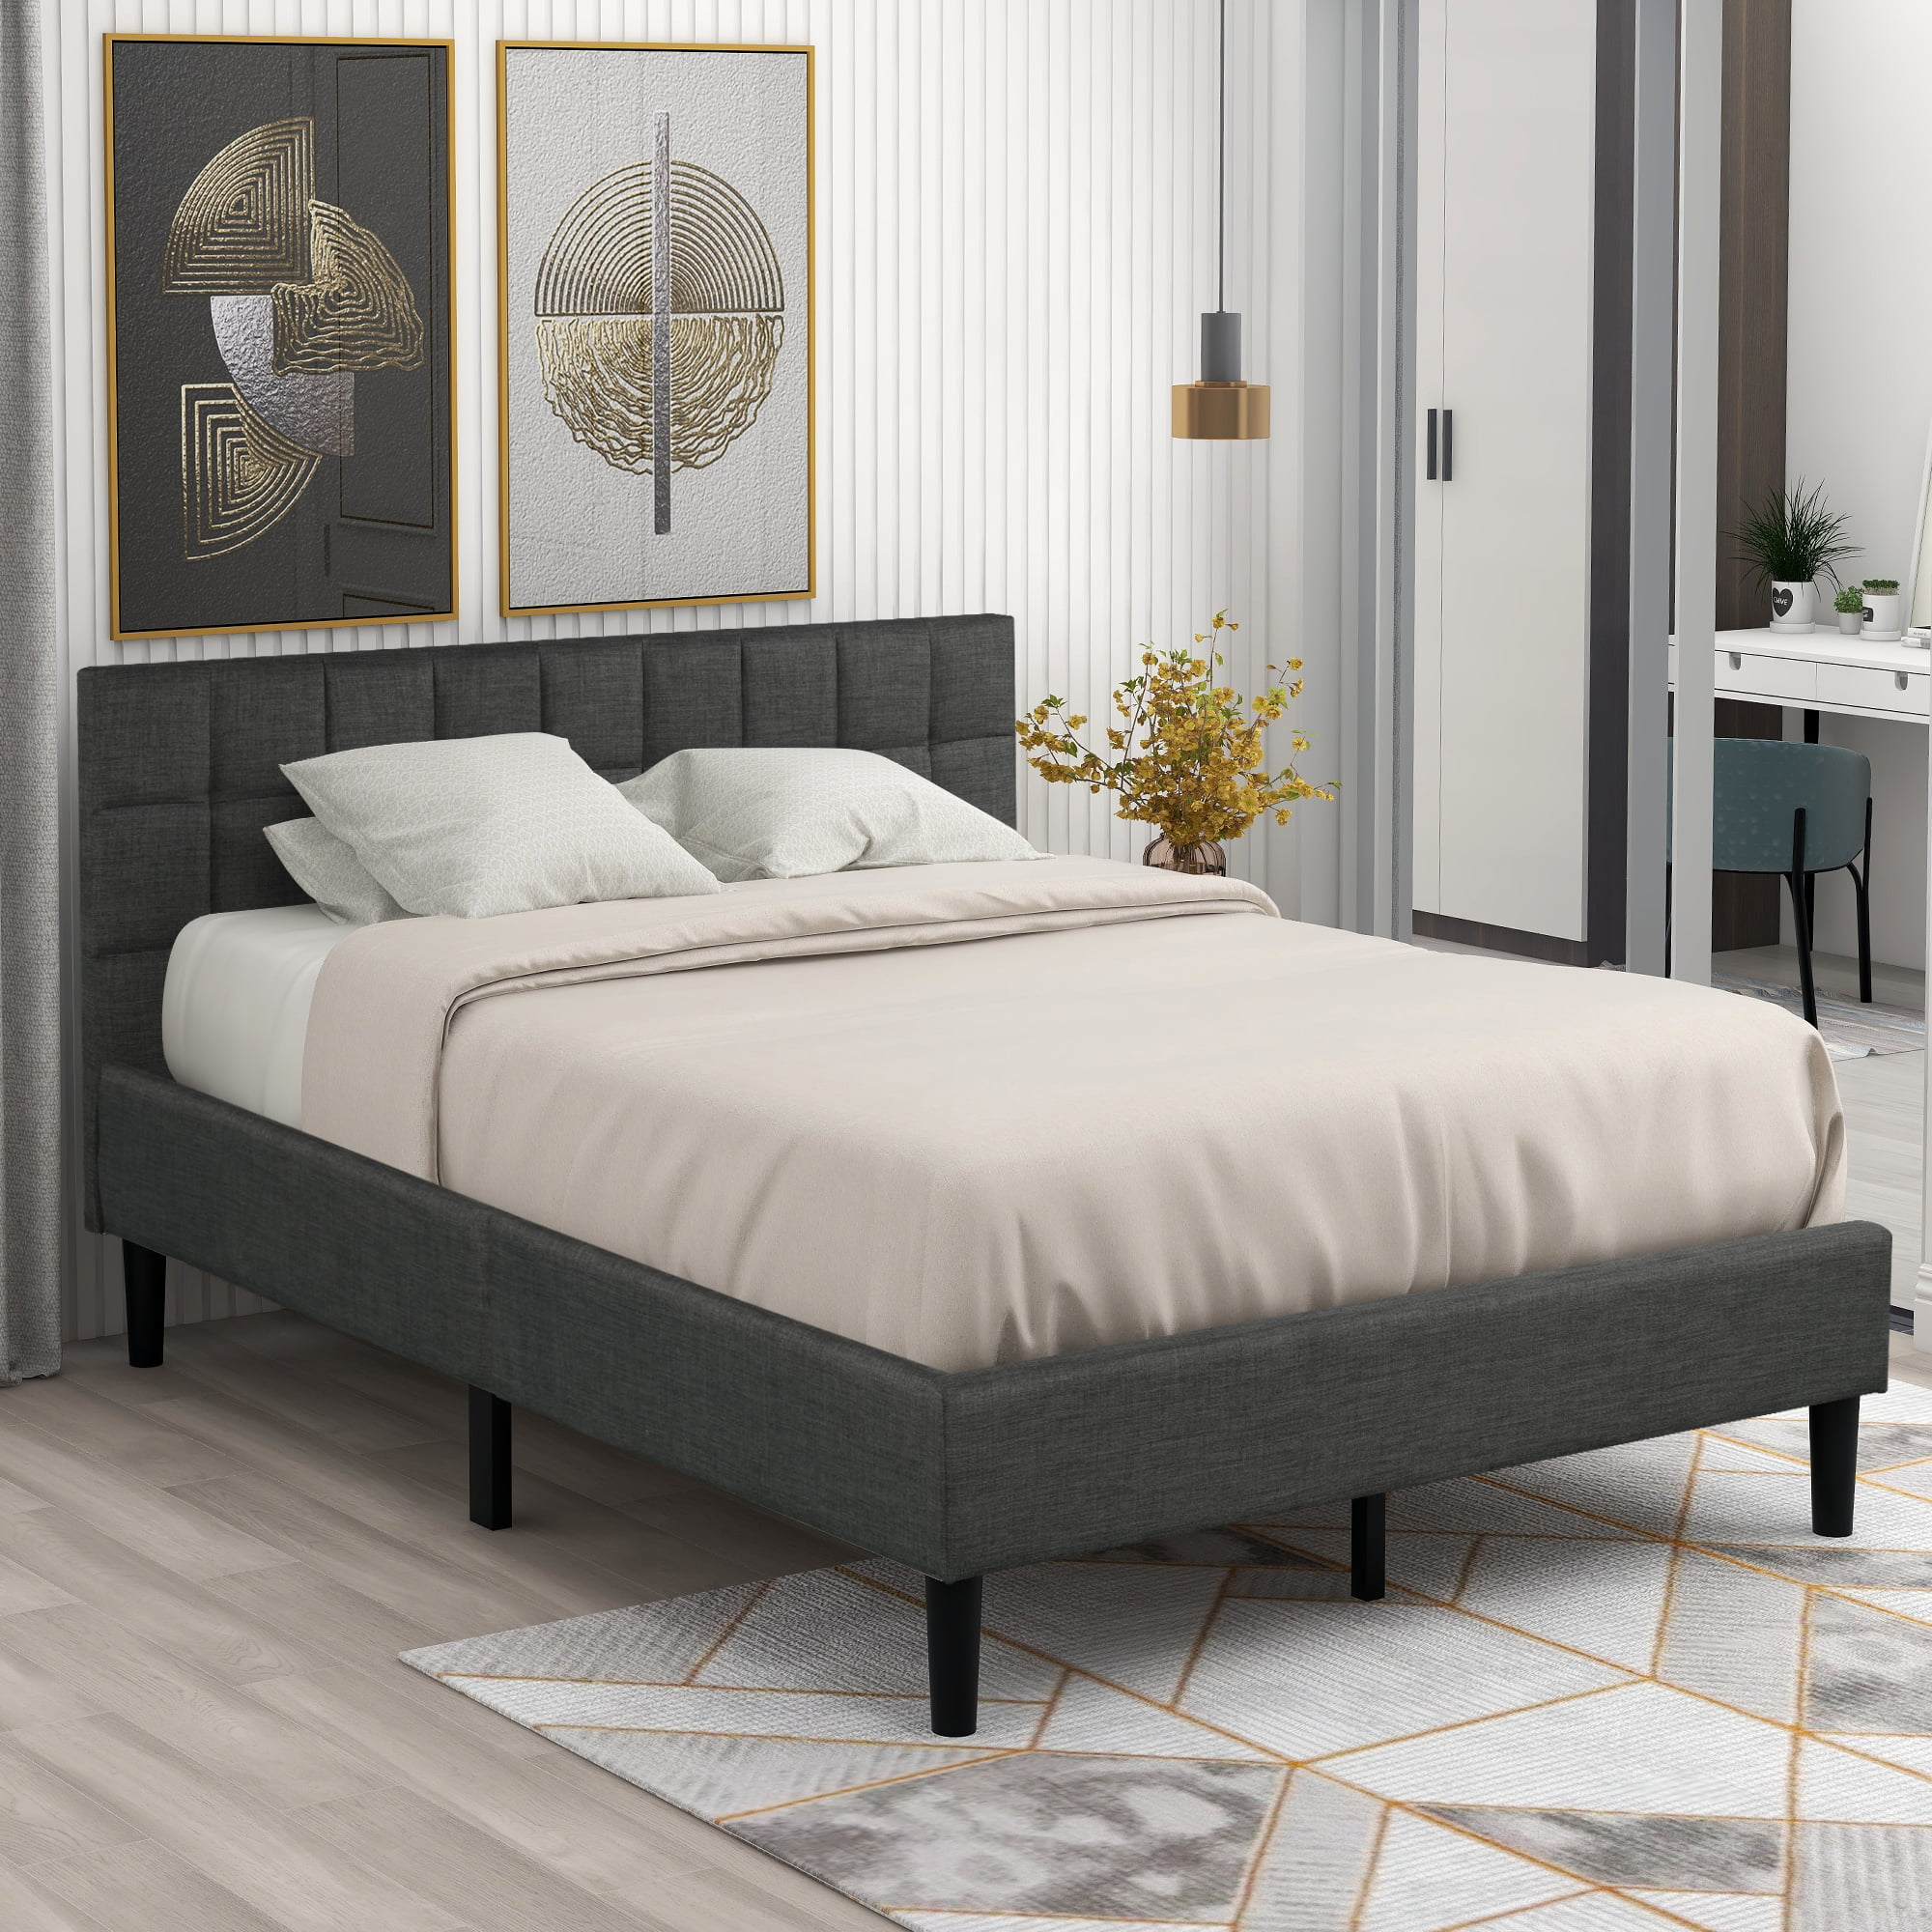 Queen Bed Frames For Kids Heavy Duty Wood Queen Platform Bed Frame With Headboard Upholstered Queen Bed Frame No Box Spring Needed Great For Boys Girls Modern Bedroom Furniture Gray W11846